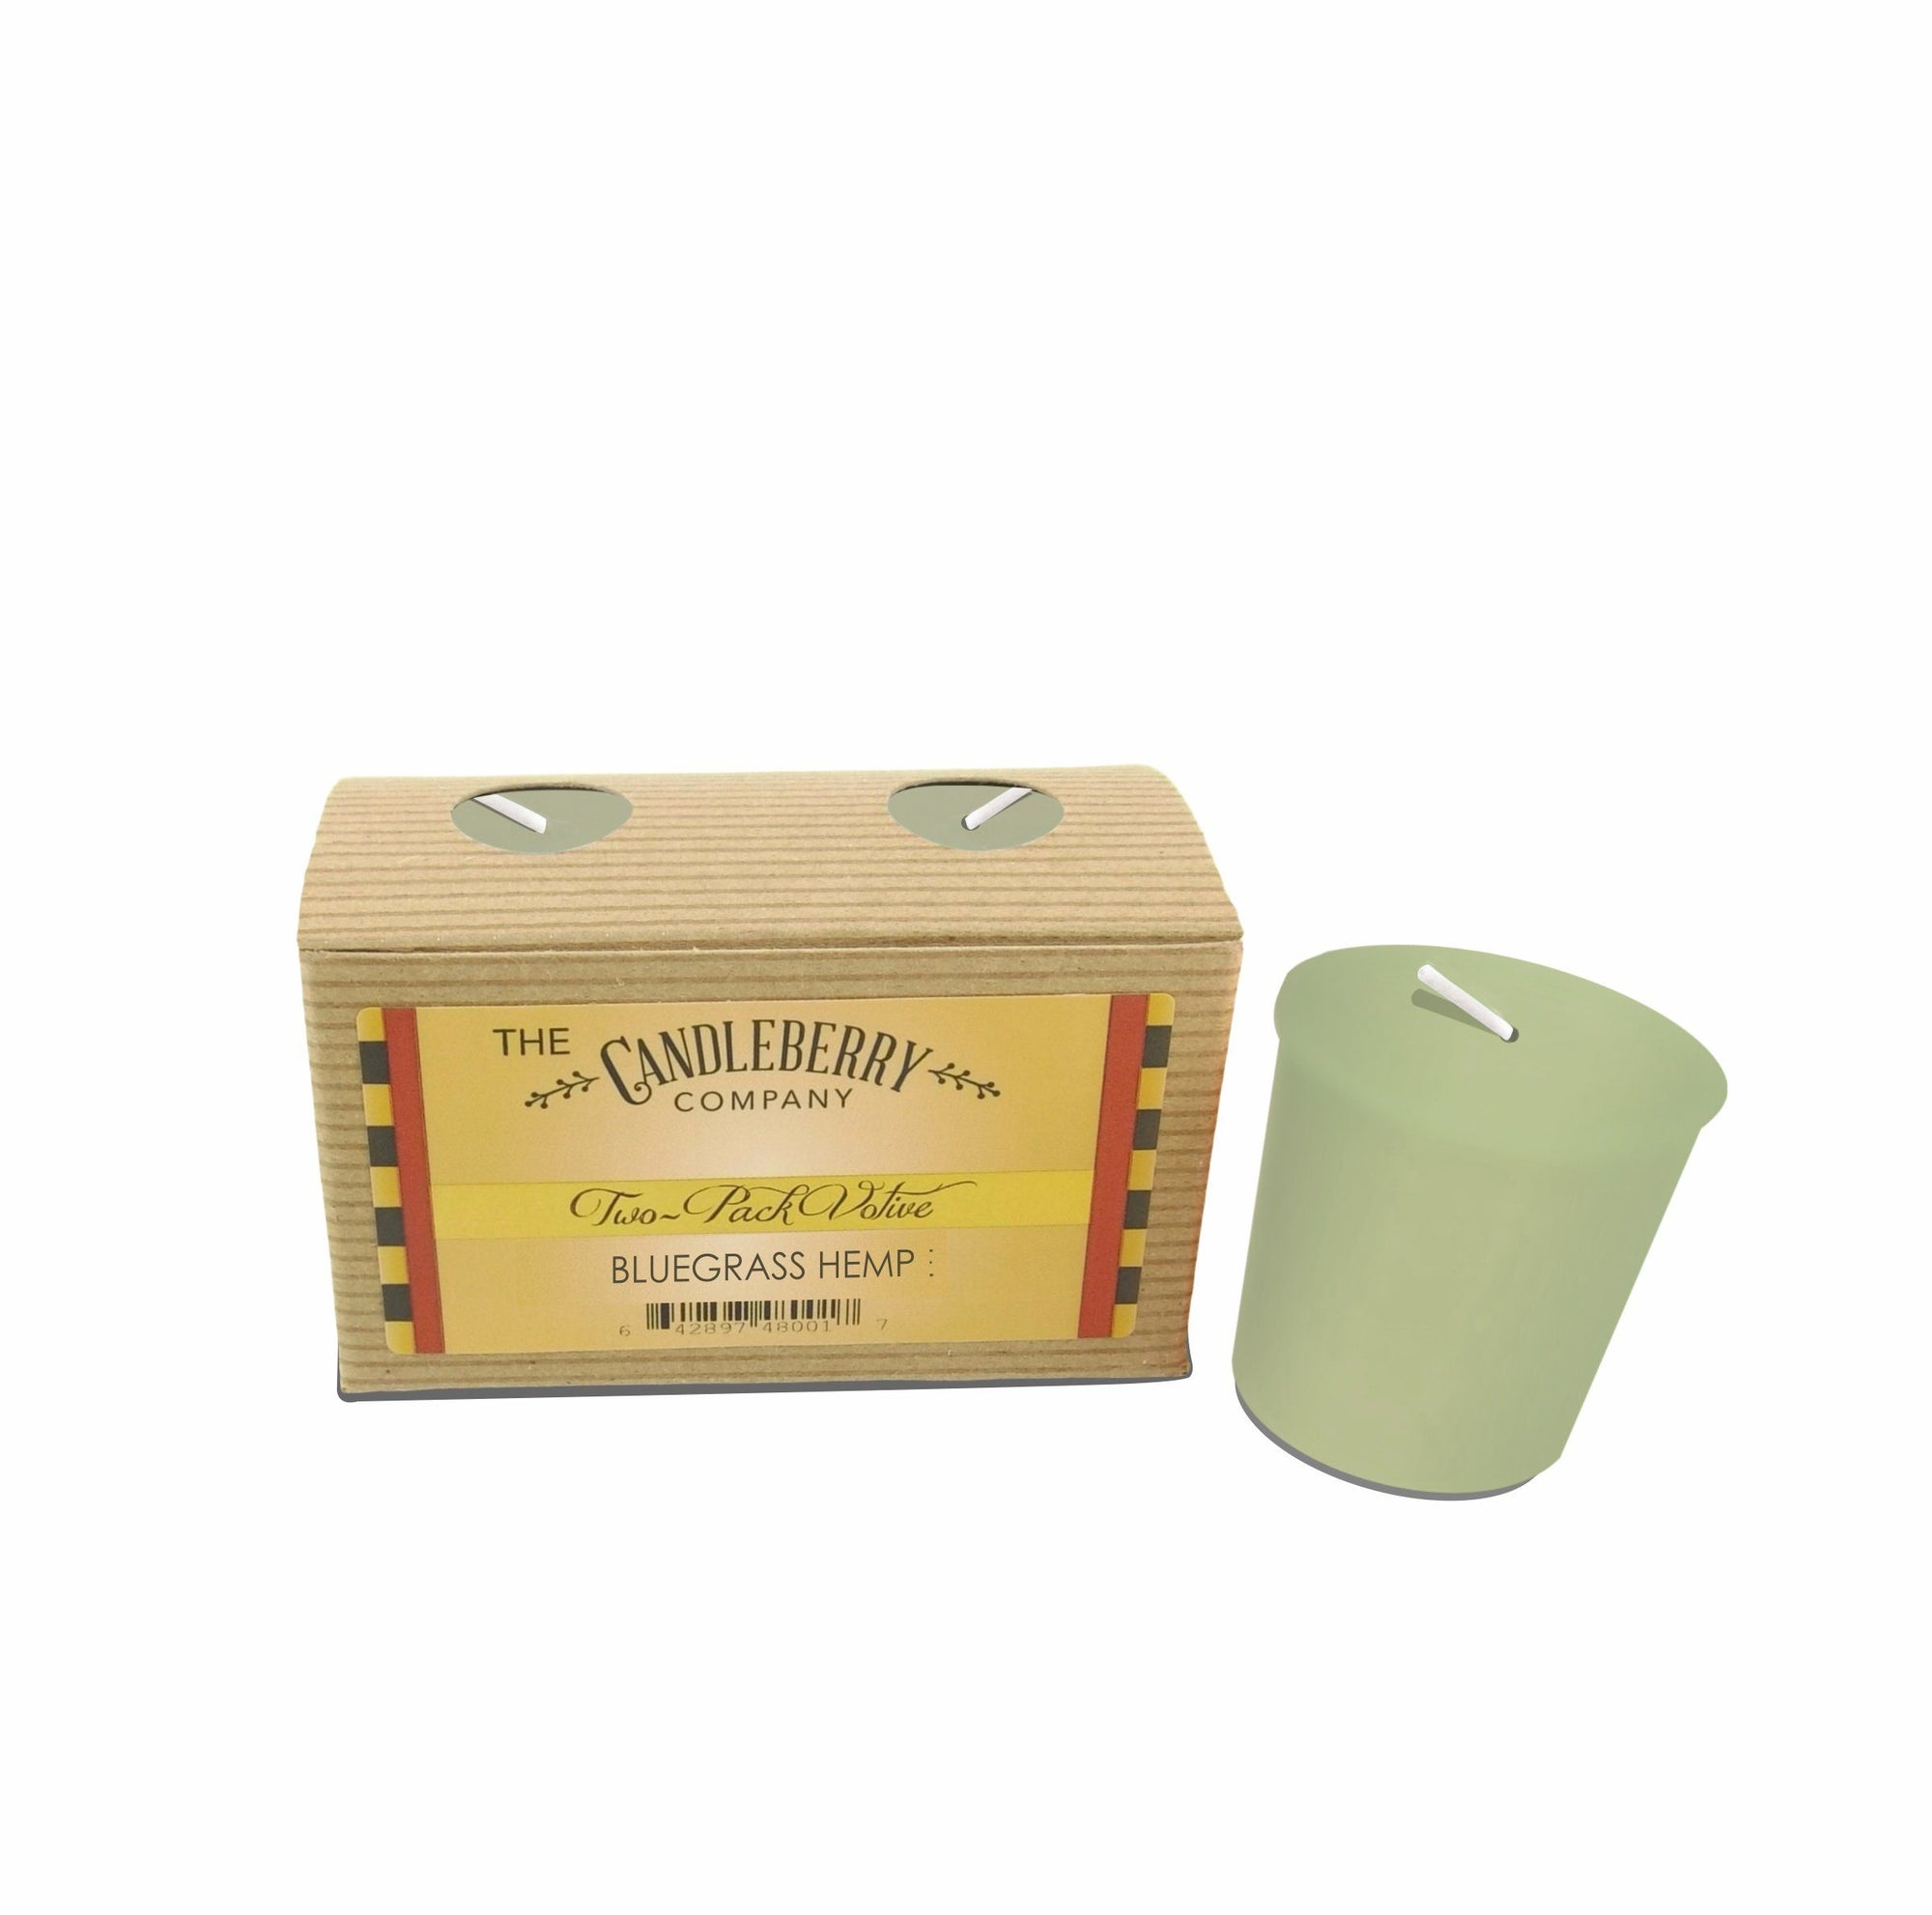 Bluegrass Hemp™, 10-Hour Votive Candle(2-pack) 10-12 Hour Votive Candles The Candleberry Candle Company